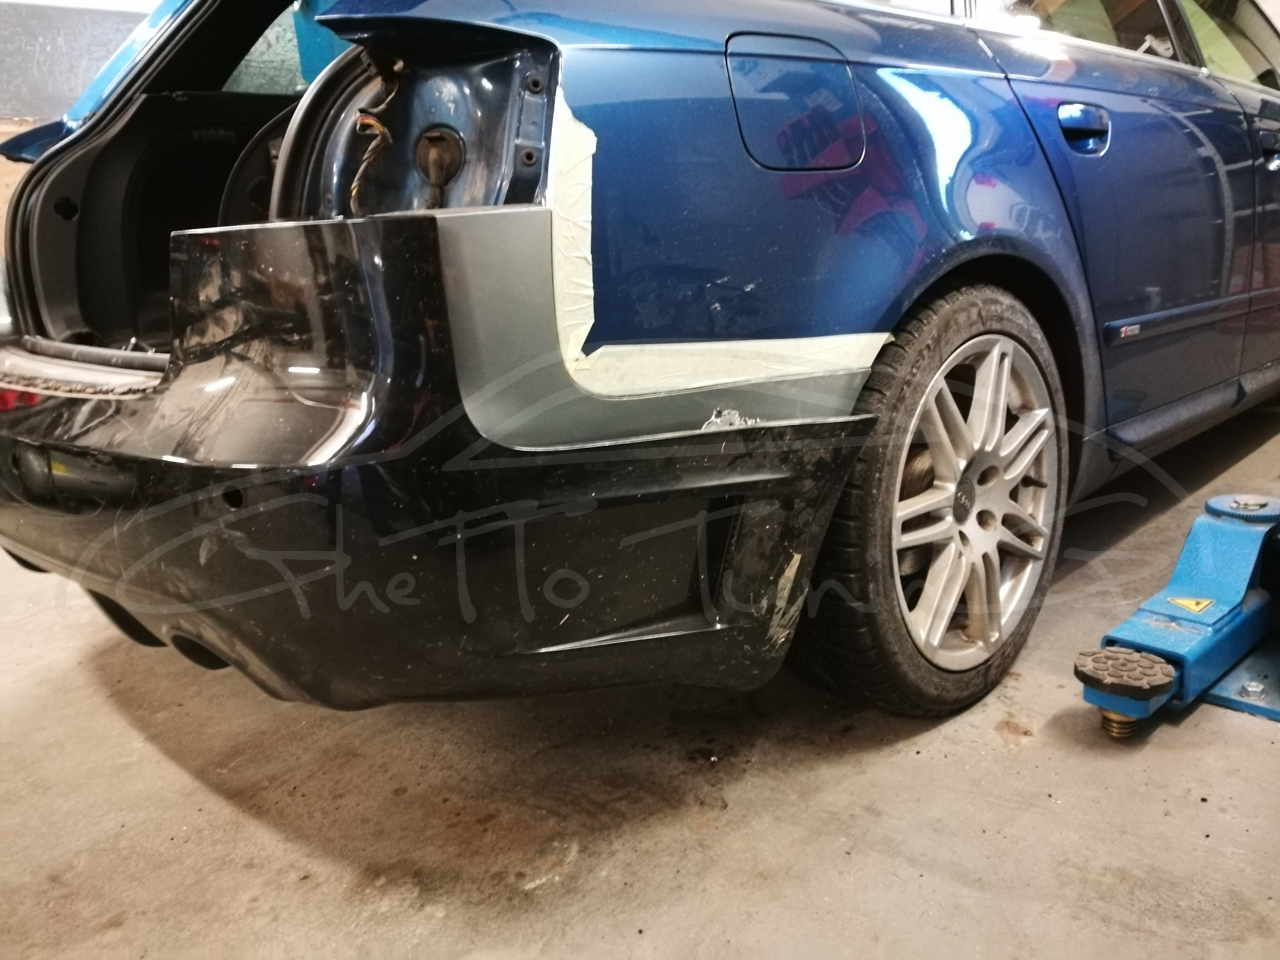 Ghetto Tuning Blog Archive Upgrade Bara Spate Audi A4 B7 Avant Dtm